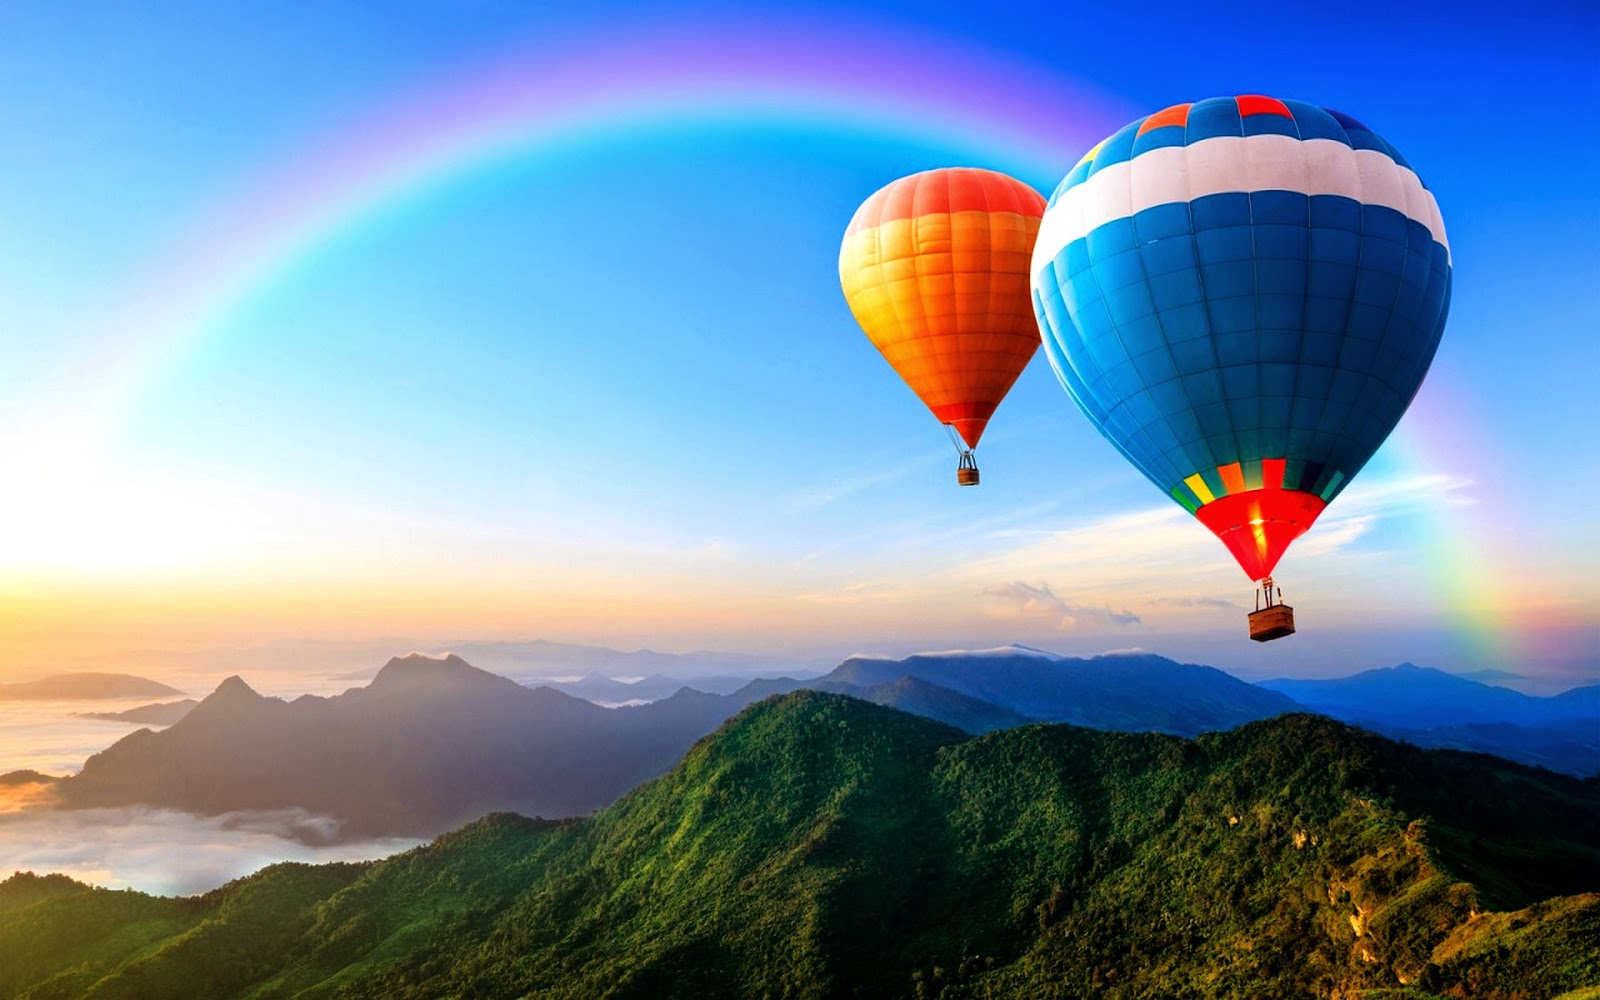 Stunning hot air balloon wallpaper